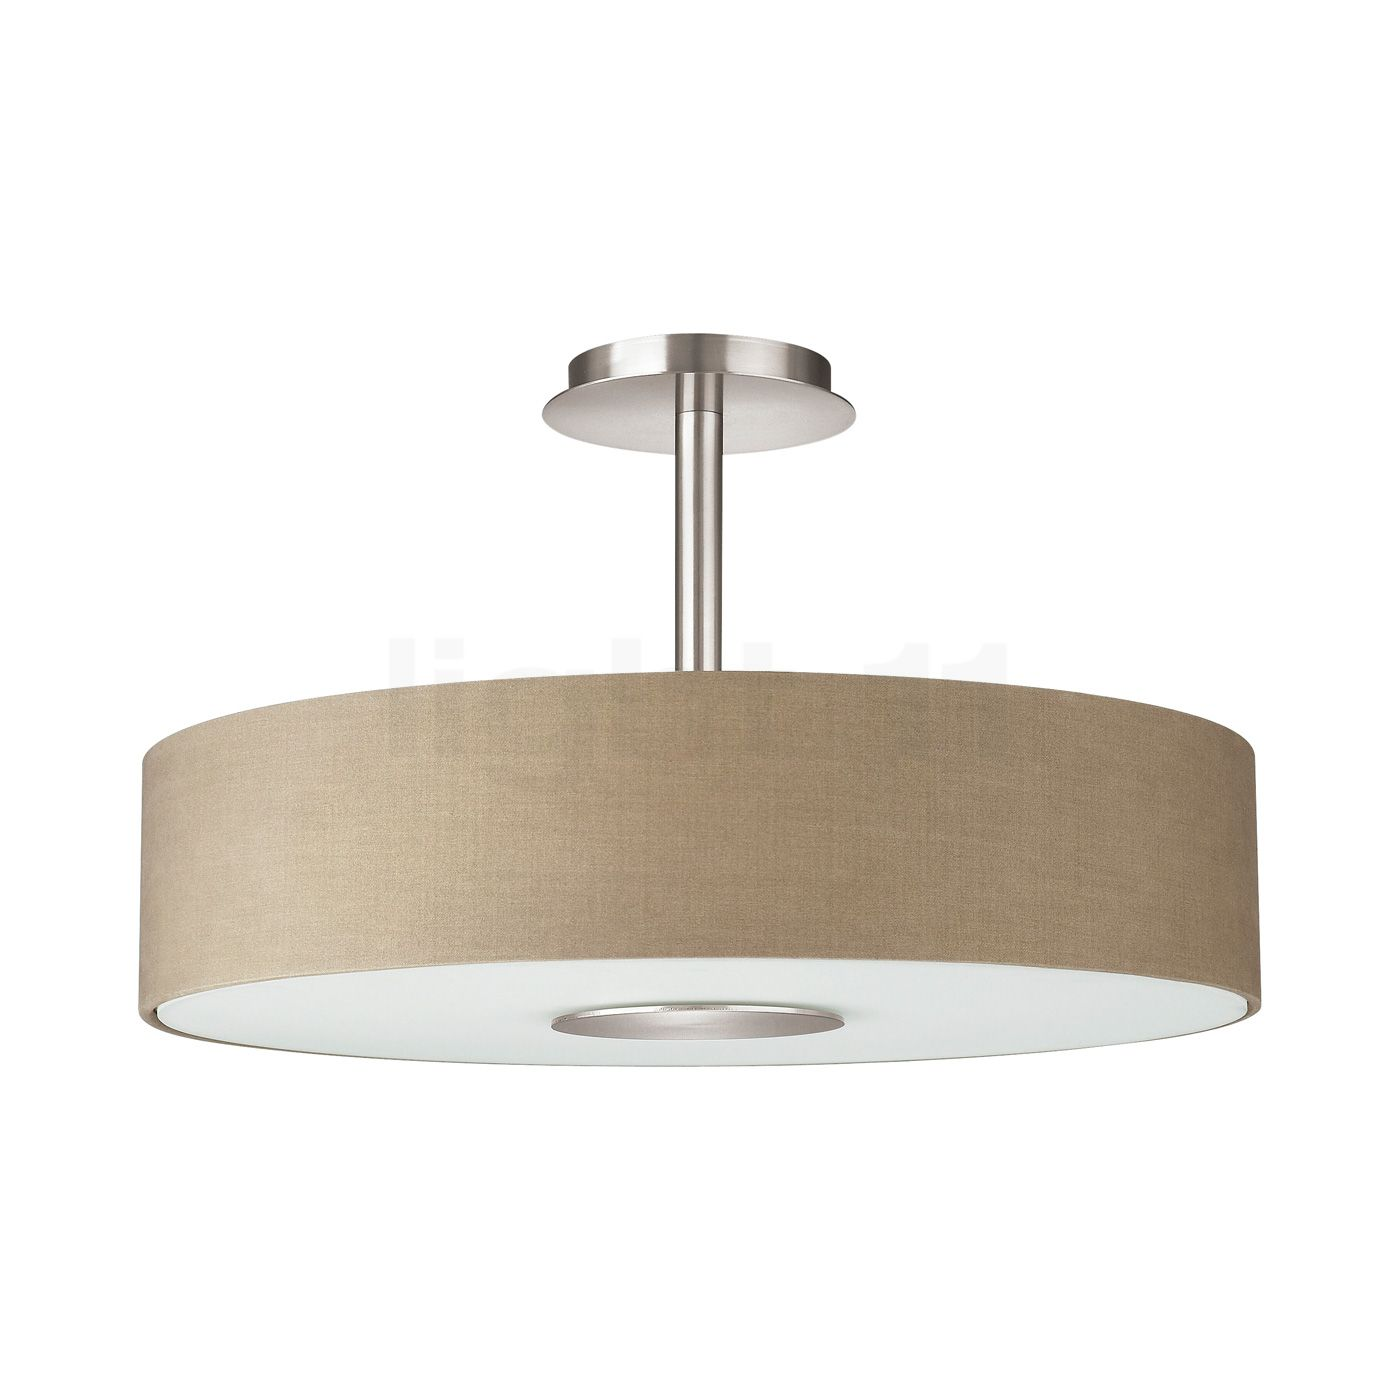 lighting for halls. Philips InStyle Flora Ceiling Light Beige Lighting For Halls